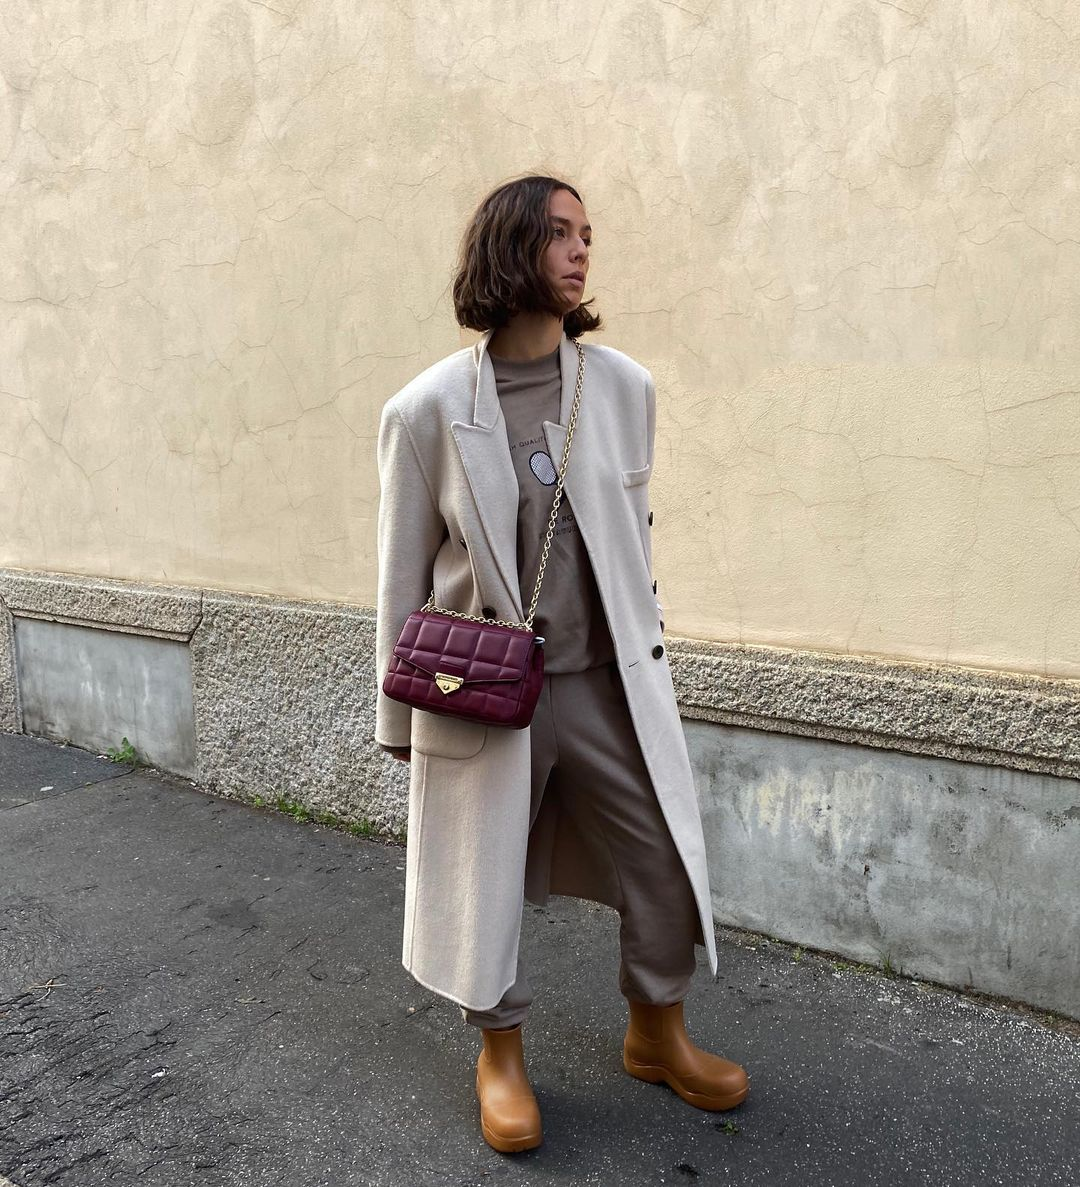 erika-boldrin-bottega-veneta-rubber-ankle-boots-rubber-band-instagram